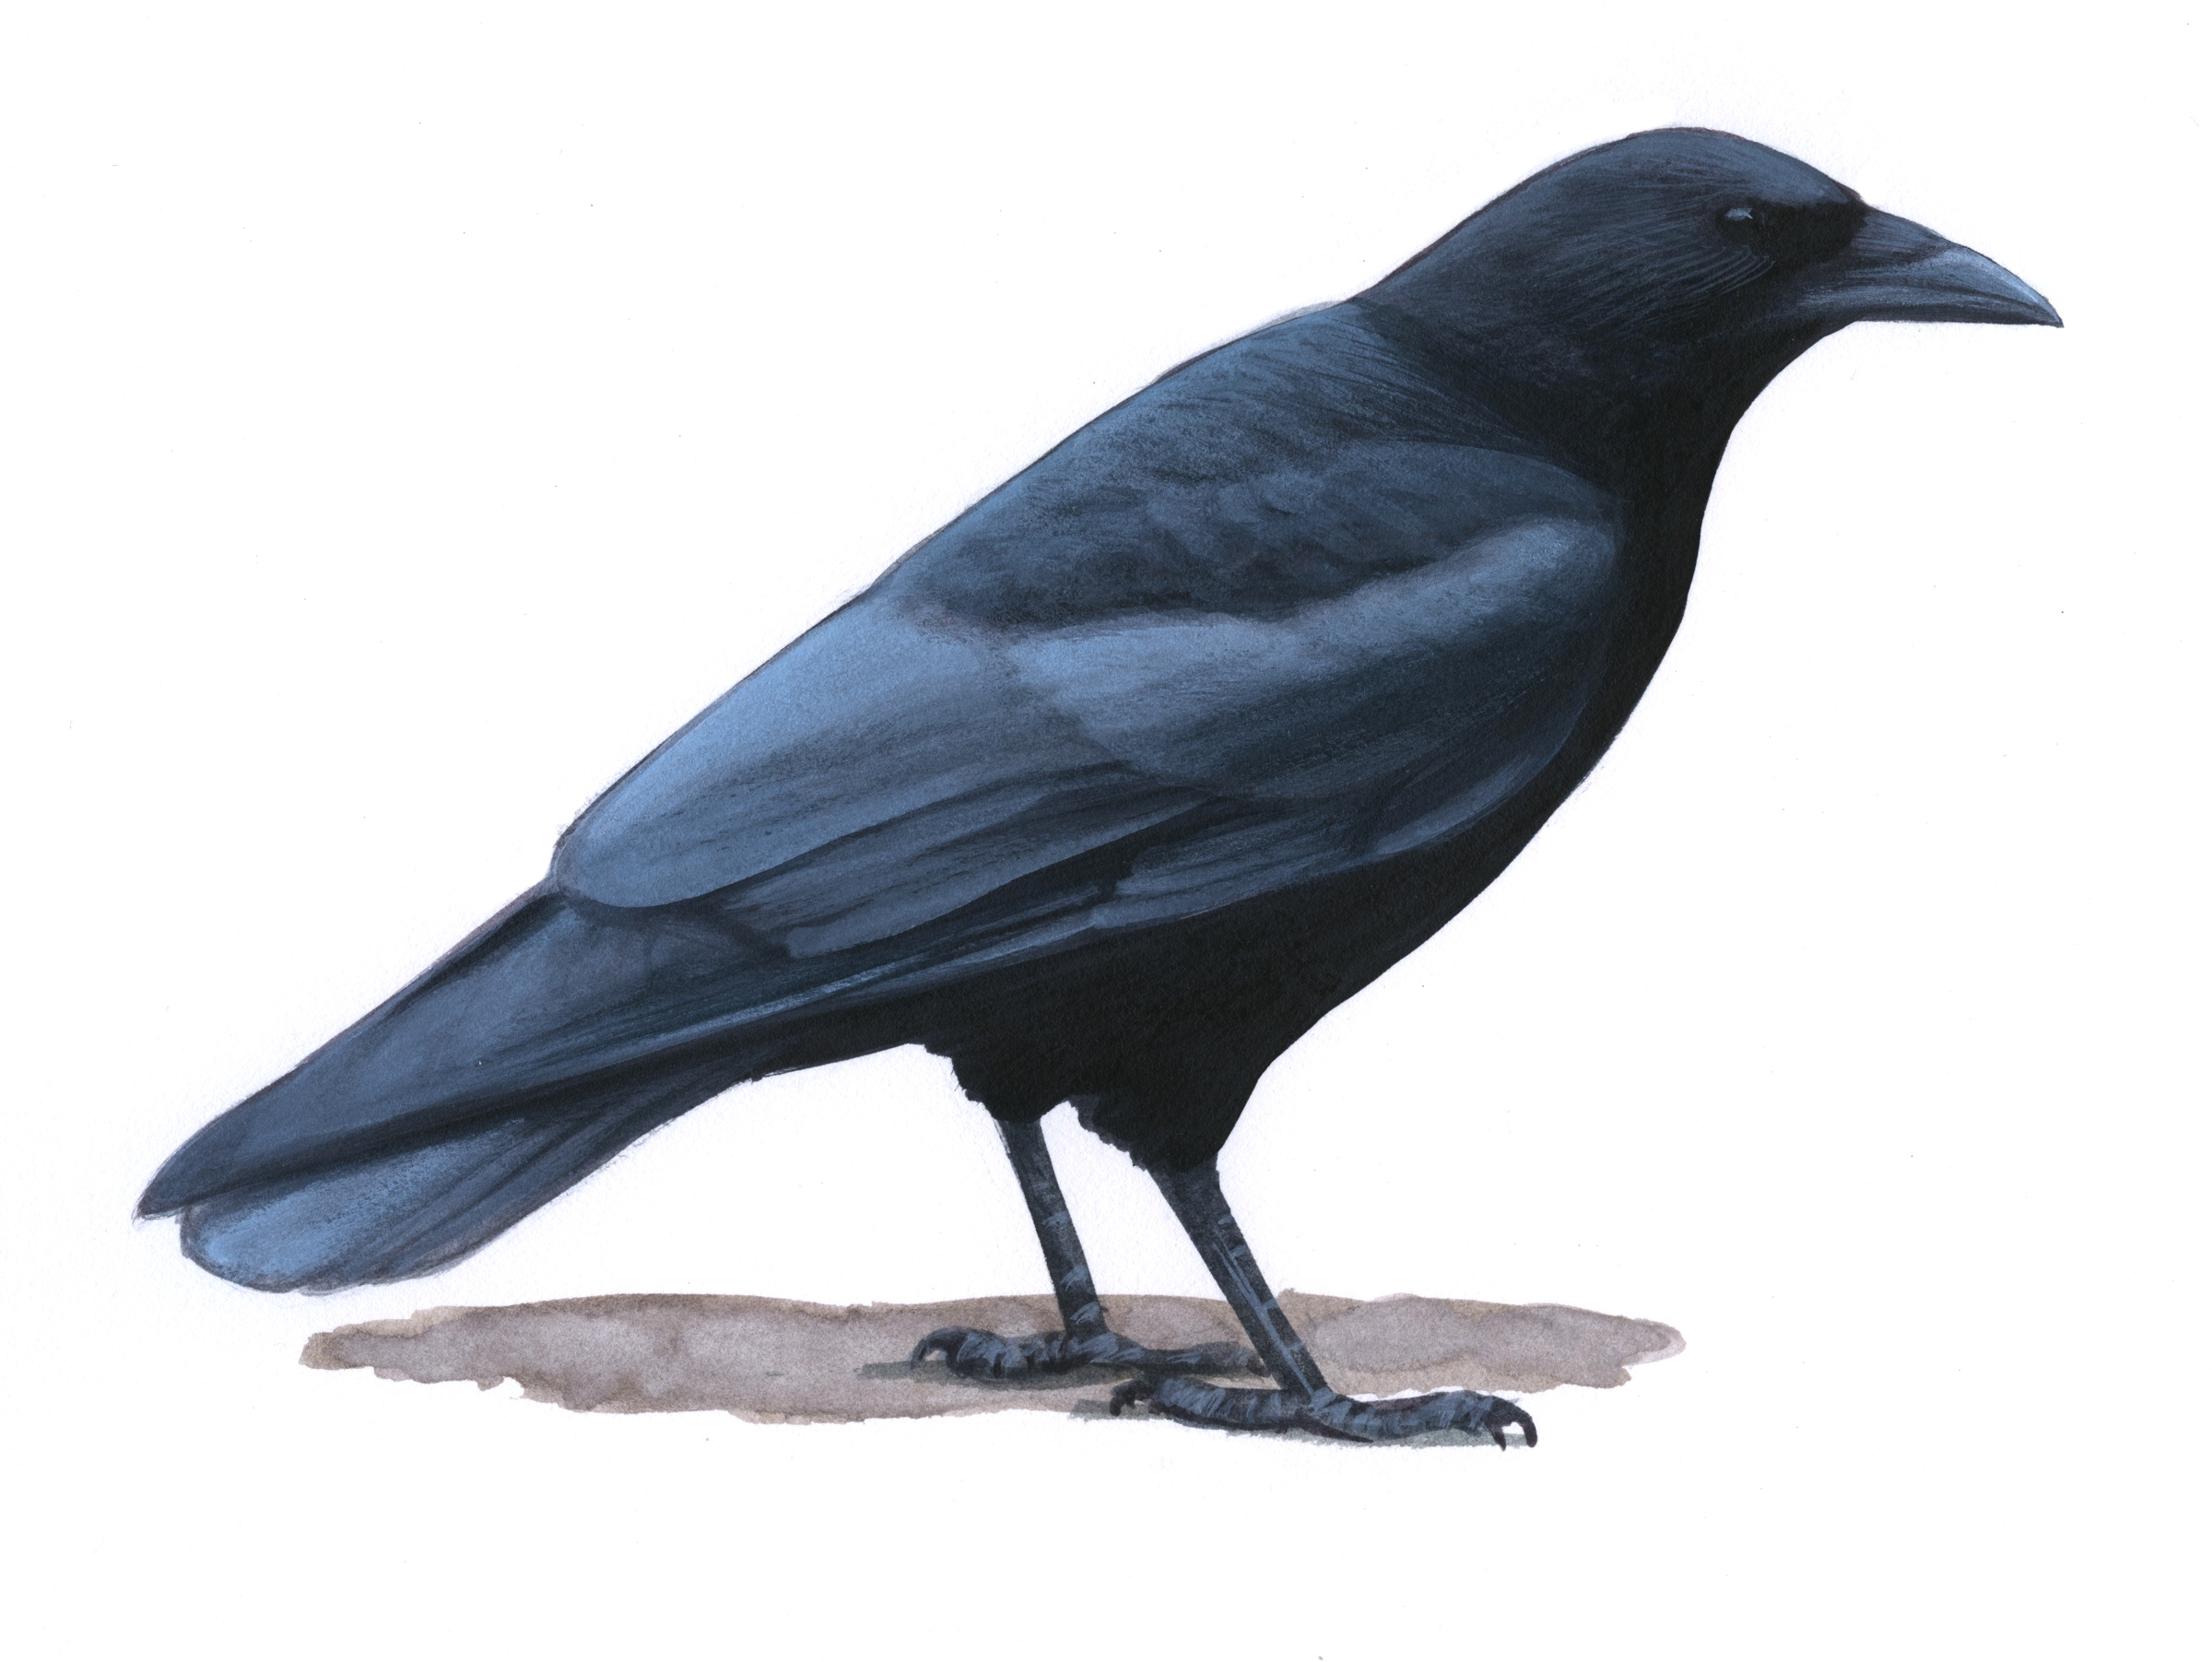 Why a crow might not appear to be 'all black' - BirdWatching